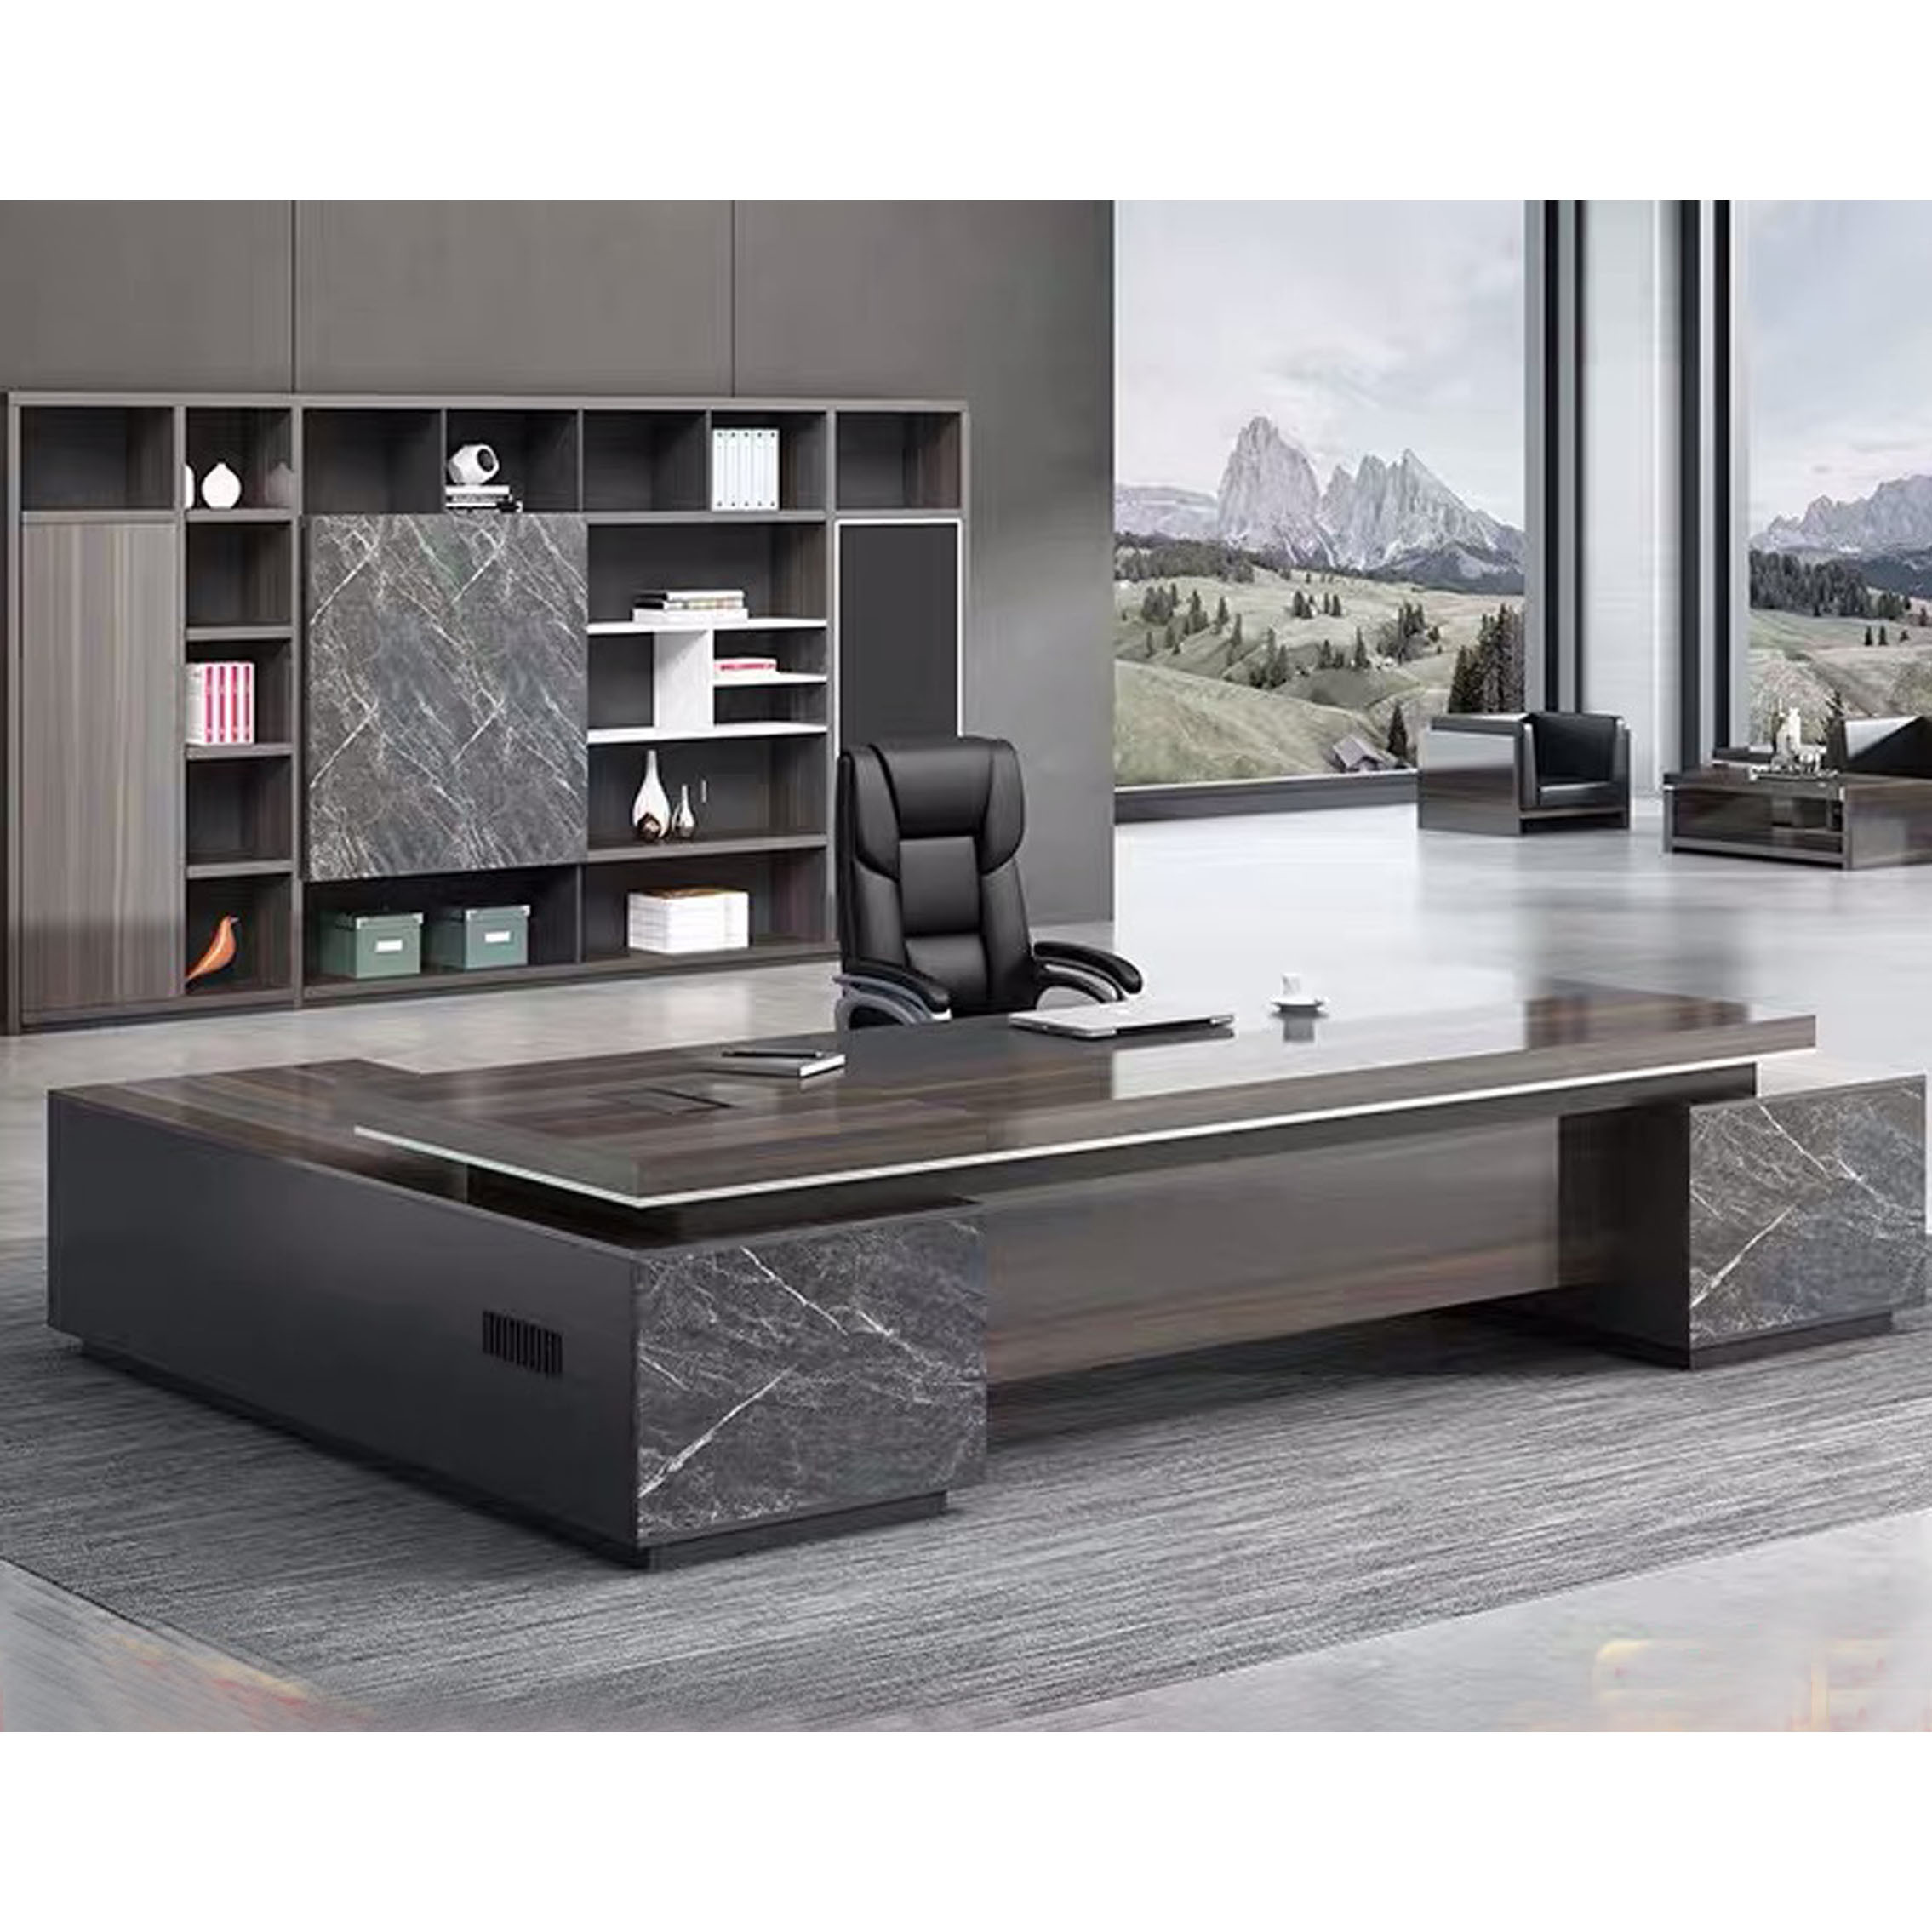 China Ceo Luxury Modern Office Table Executive Office Desk Commercial Office Furniture China Office Furniture Office Desk